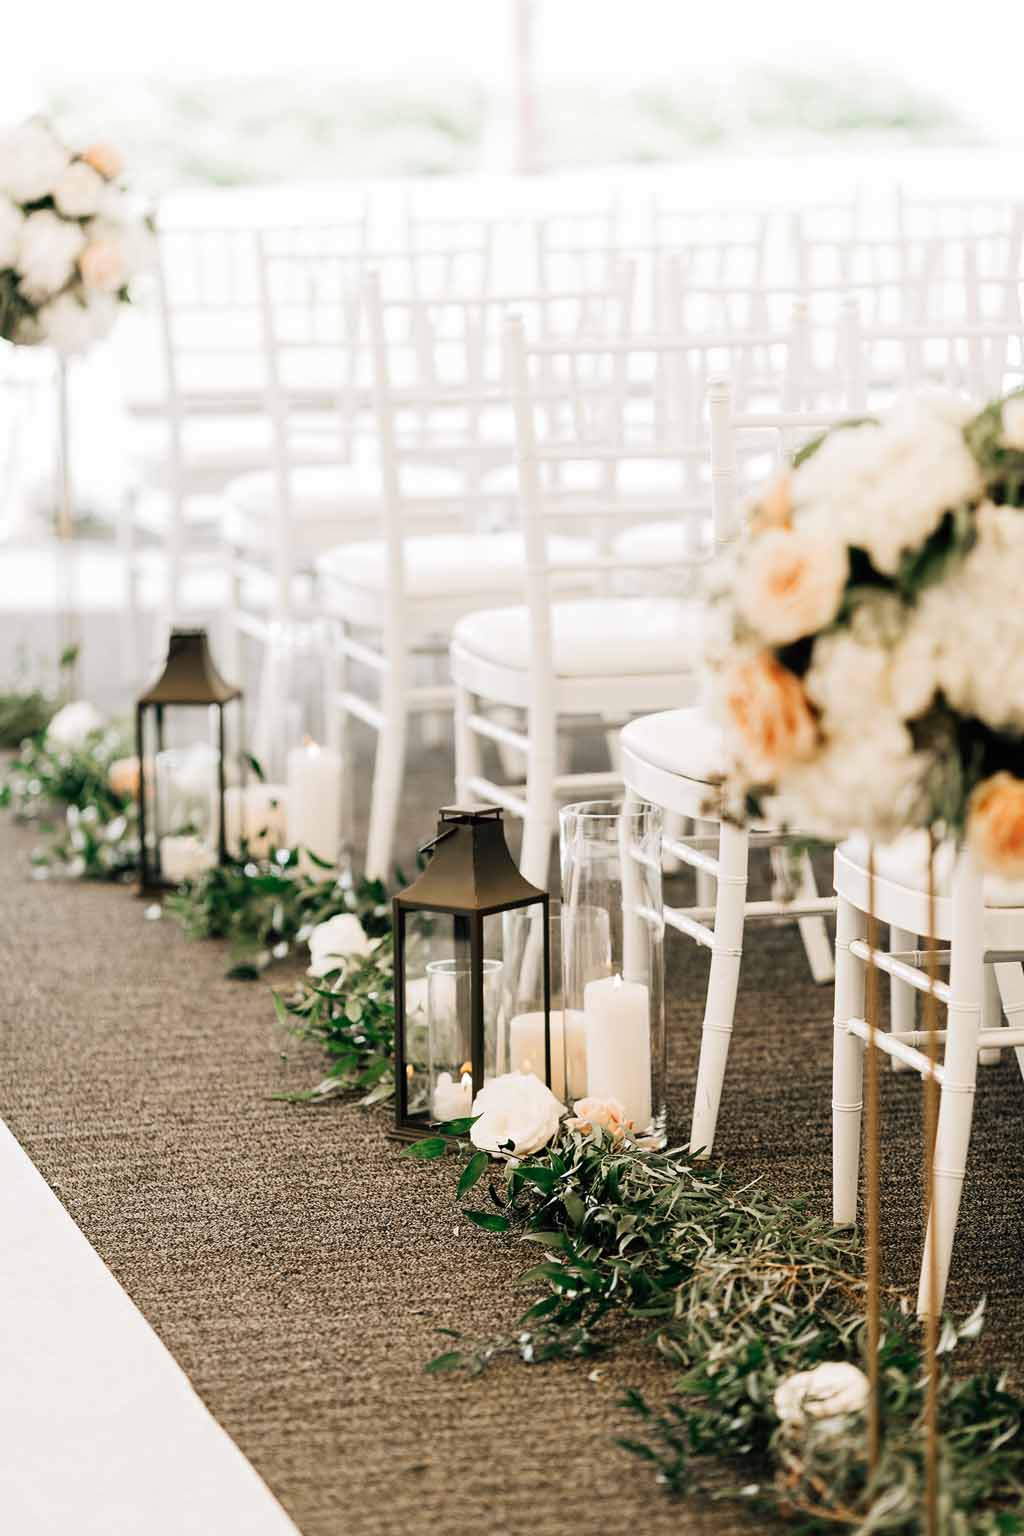 Wedding ceremony aisle lined with ivory and peach spring flowers, greenery, and lanterns, with white Chivari chairs